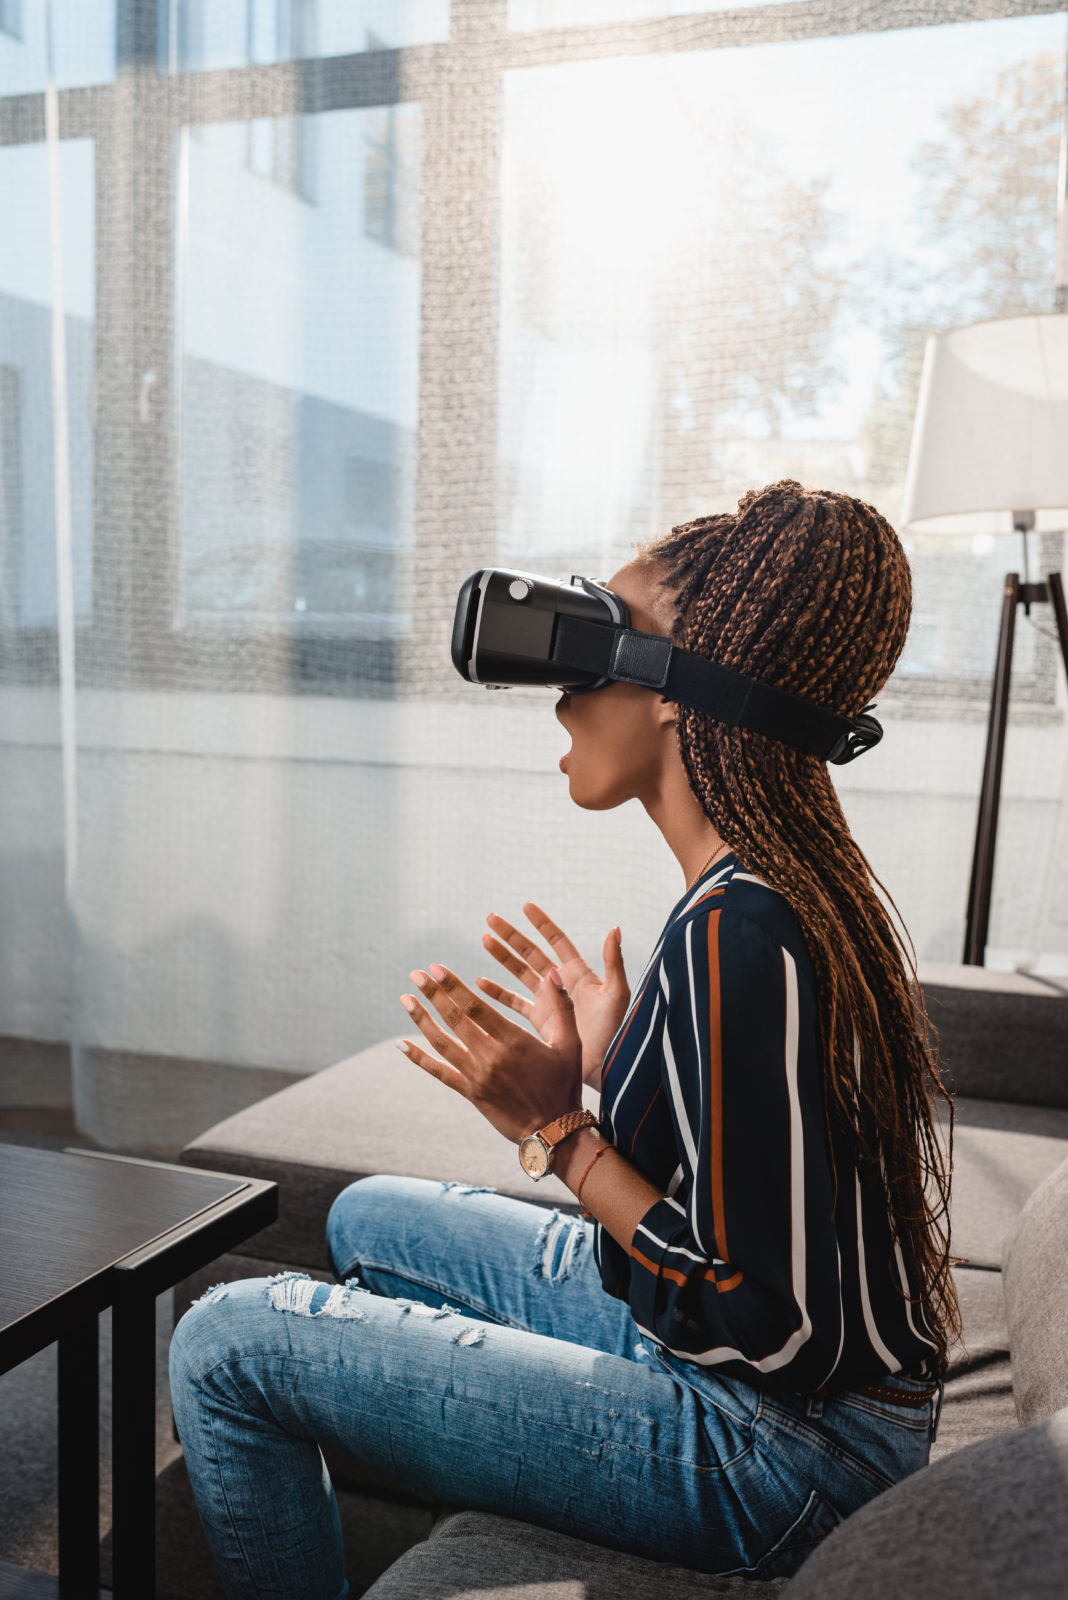 virtual reality at events